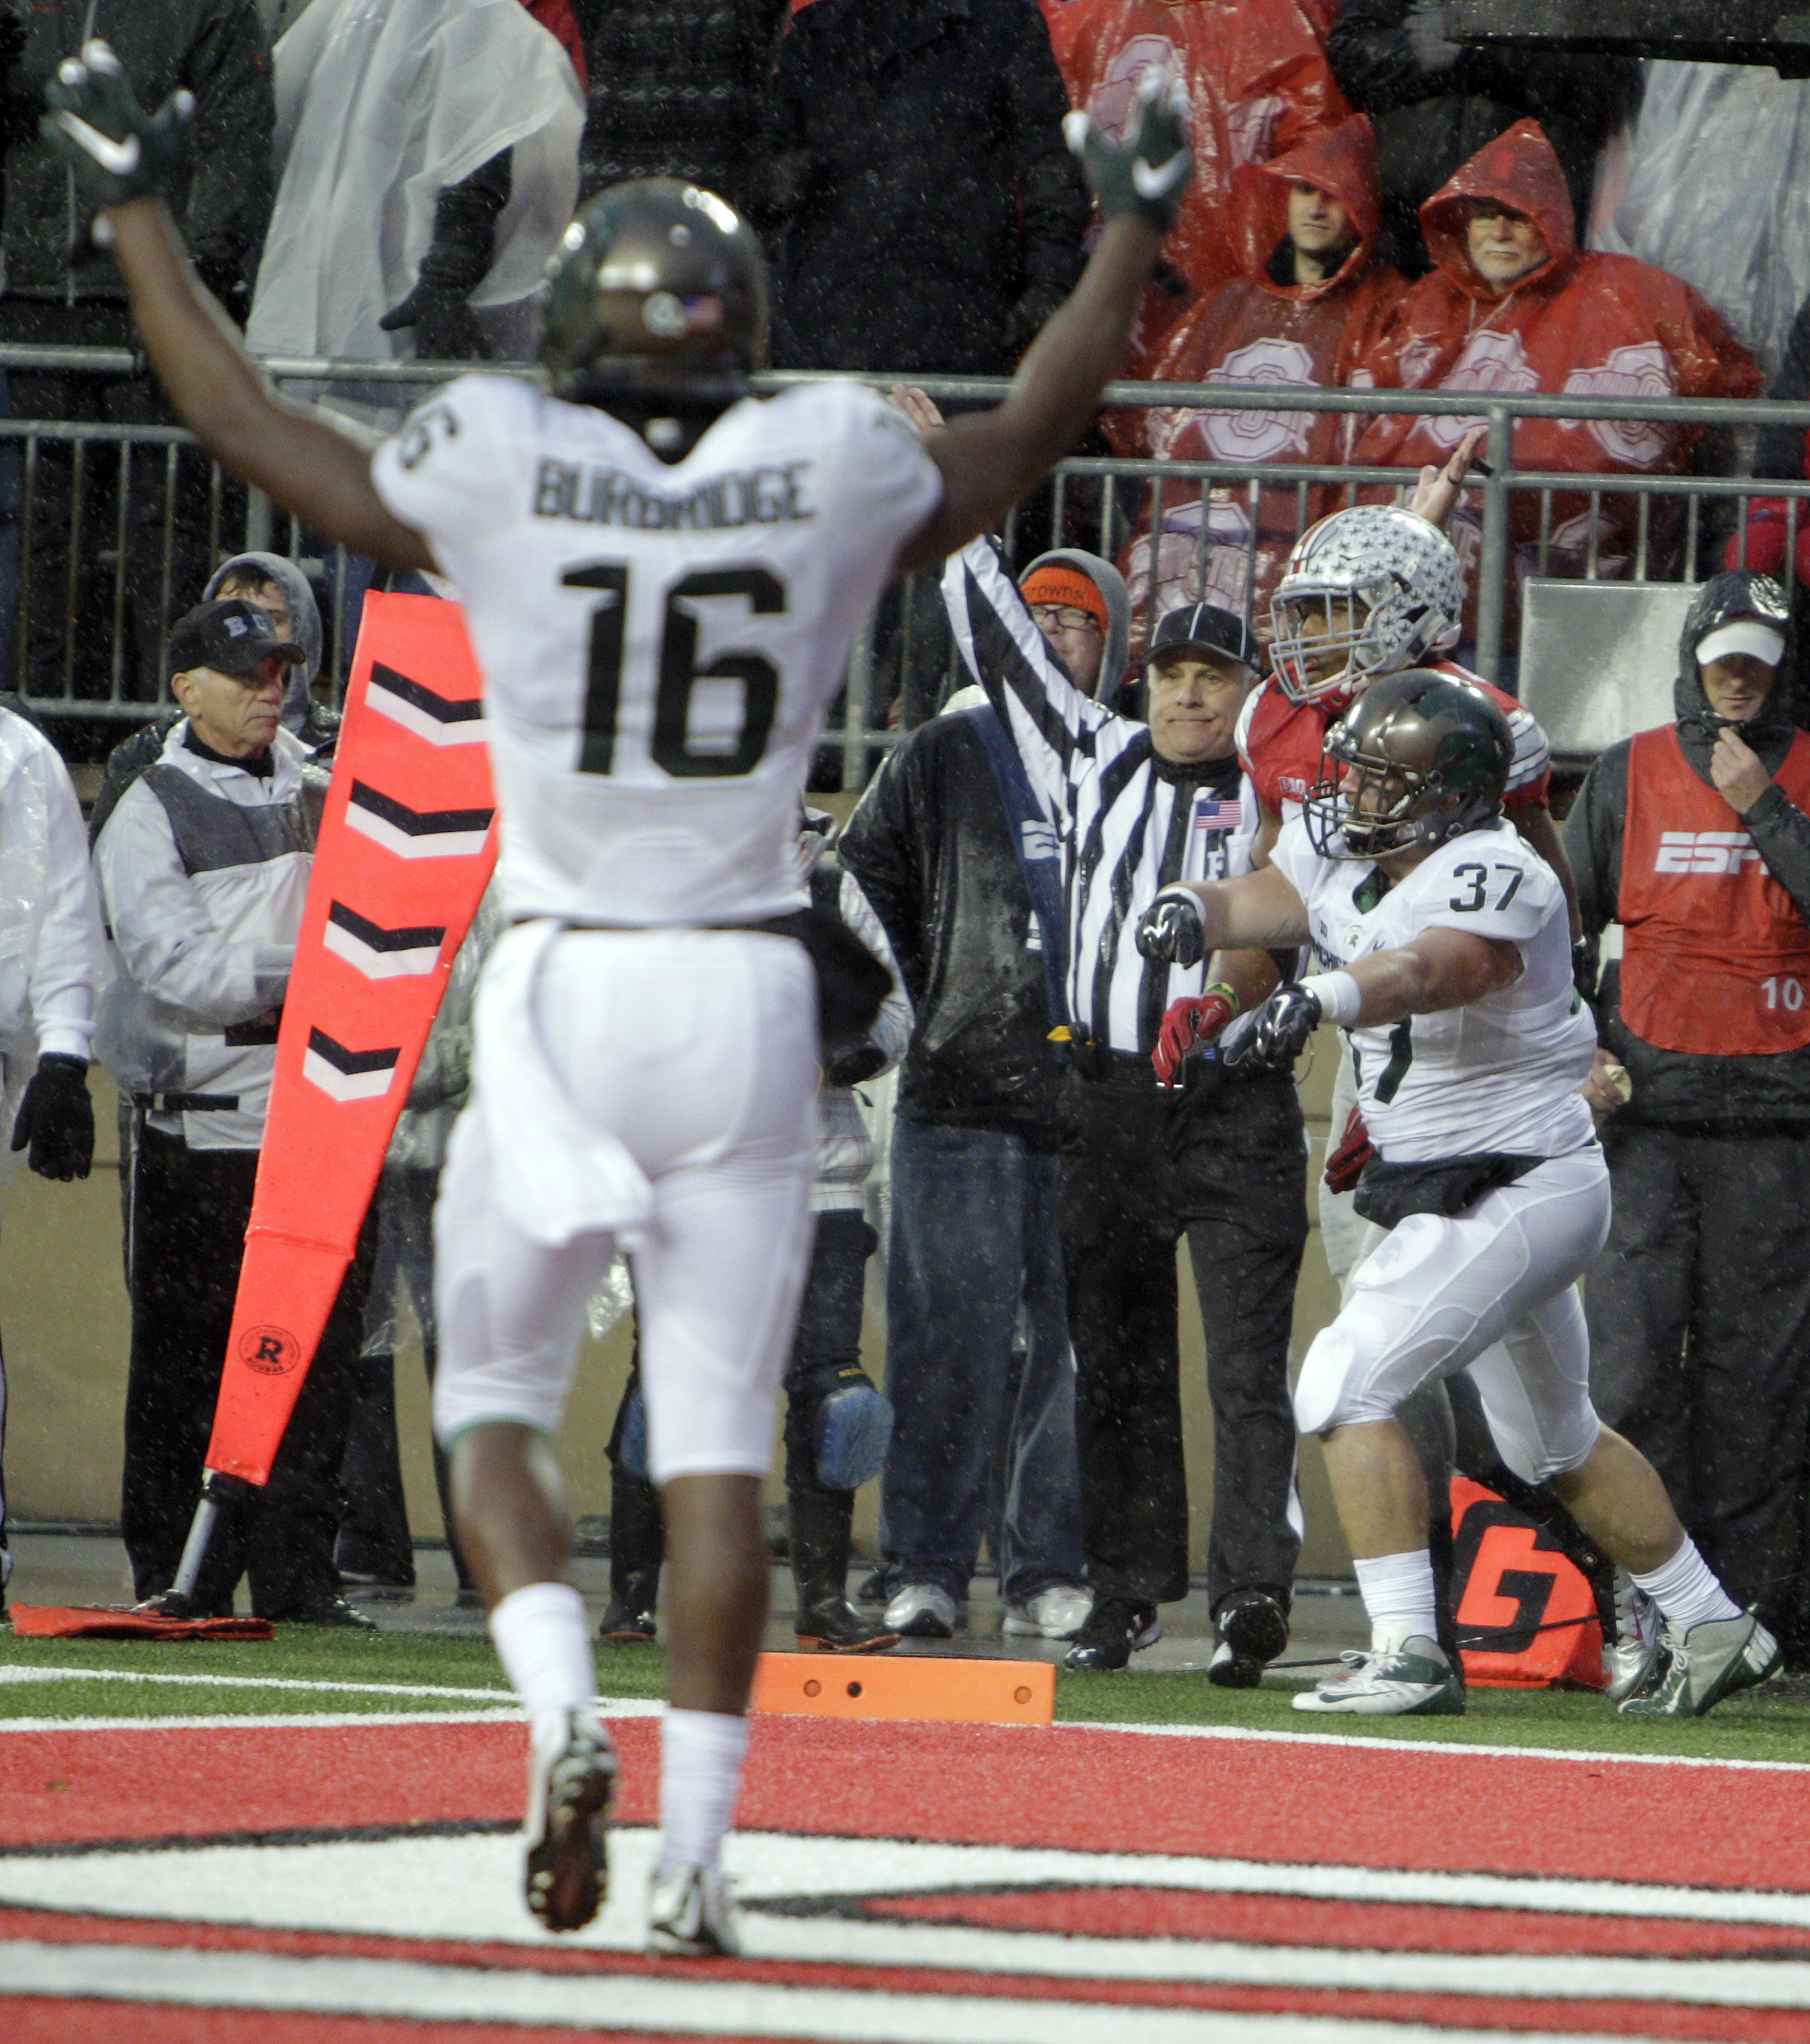 Michigan State fullback Trevon Pendelton, right, celebrates his touchdown against Ohio State during the second quarter of an NCAA college football game, Saturday, Nov. 21, 2015, in Columbus, Ohio. (AP Photo/Jay LaPrete)